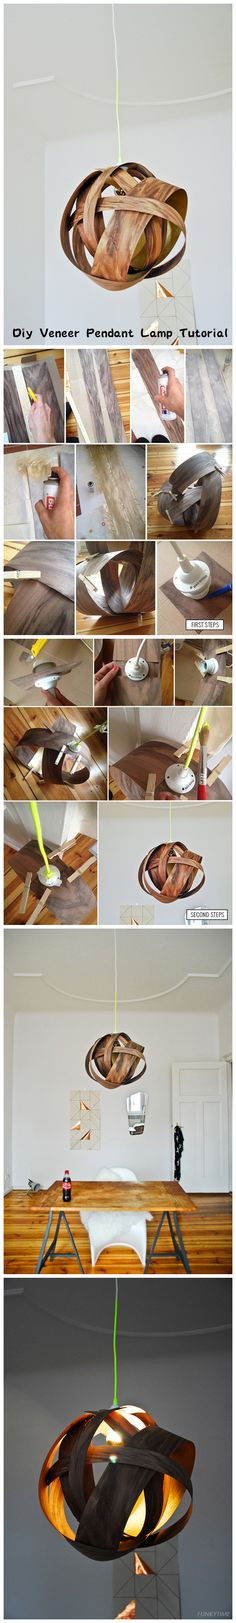 #Diy Veneer Pendant #Lamp #Tutorial